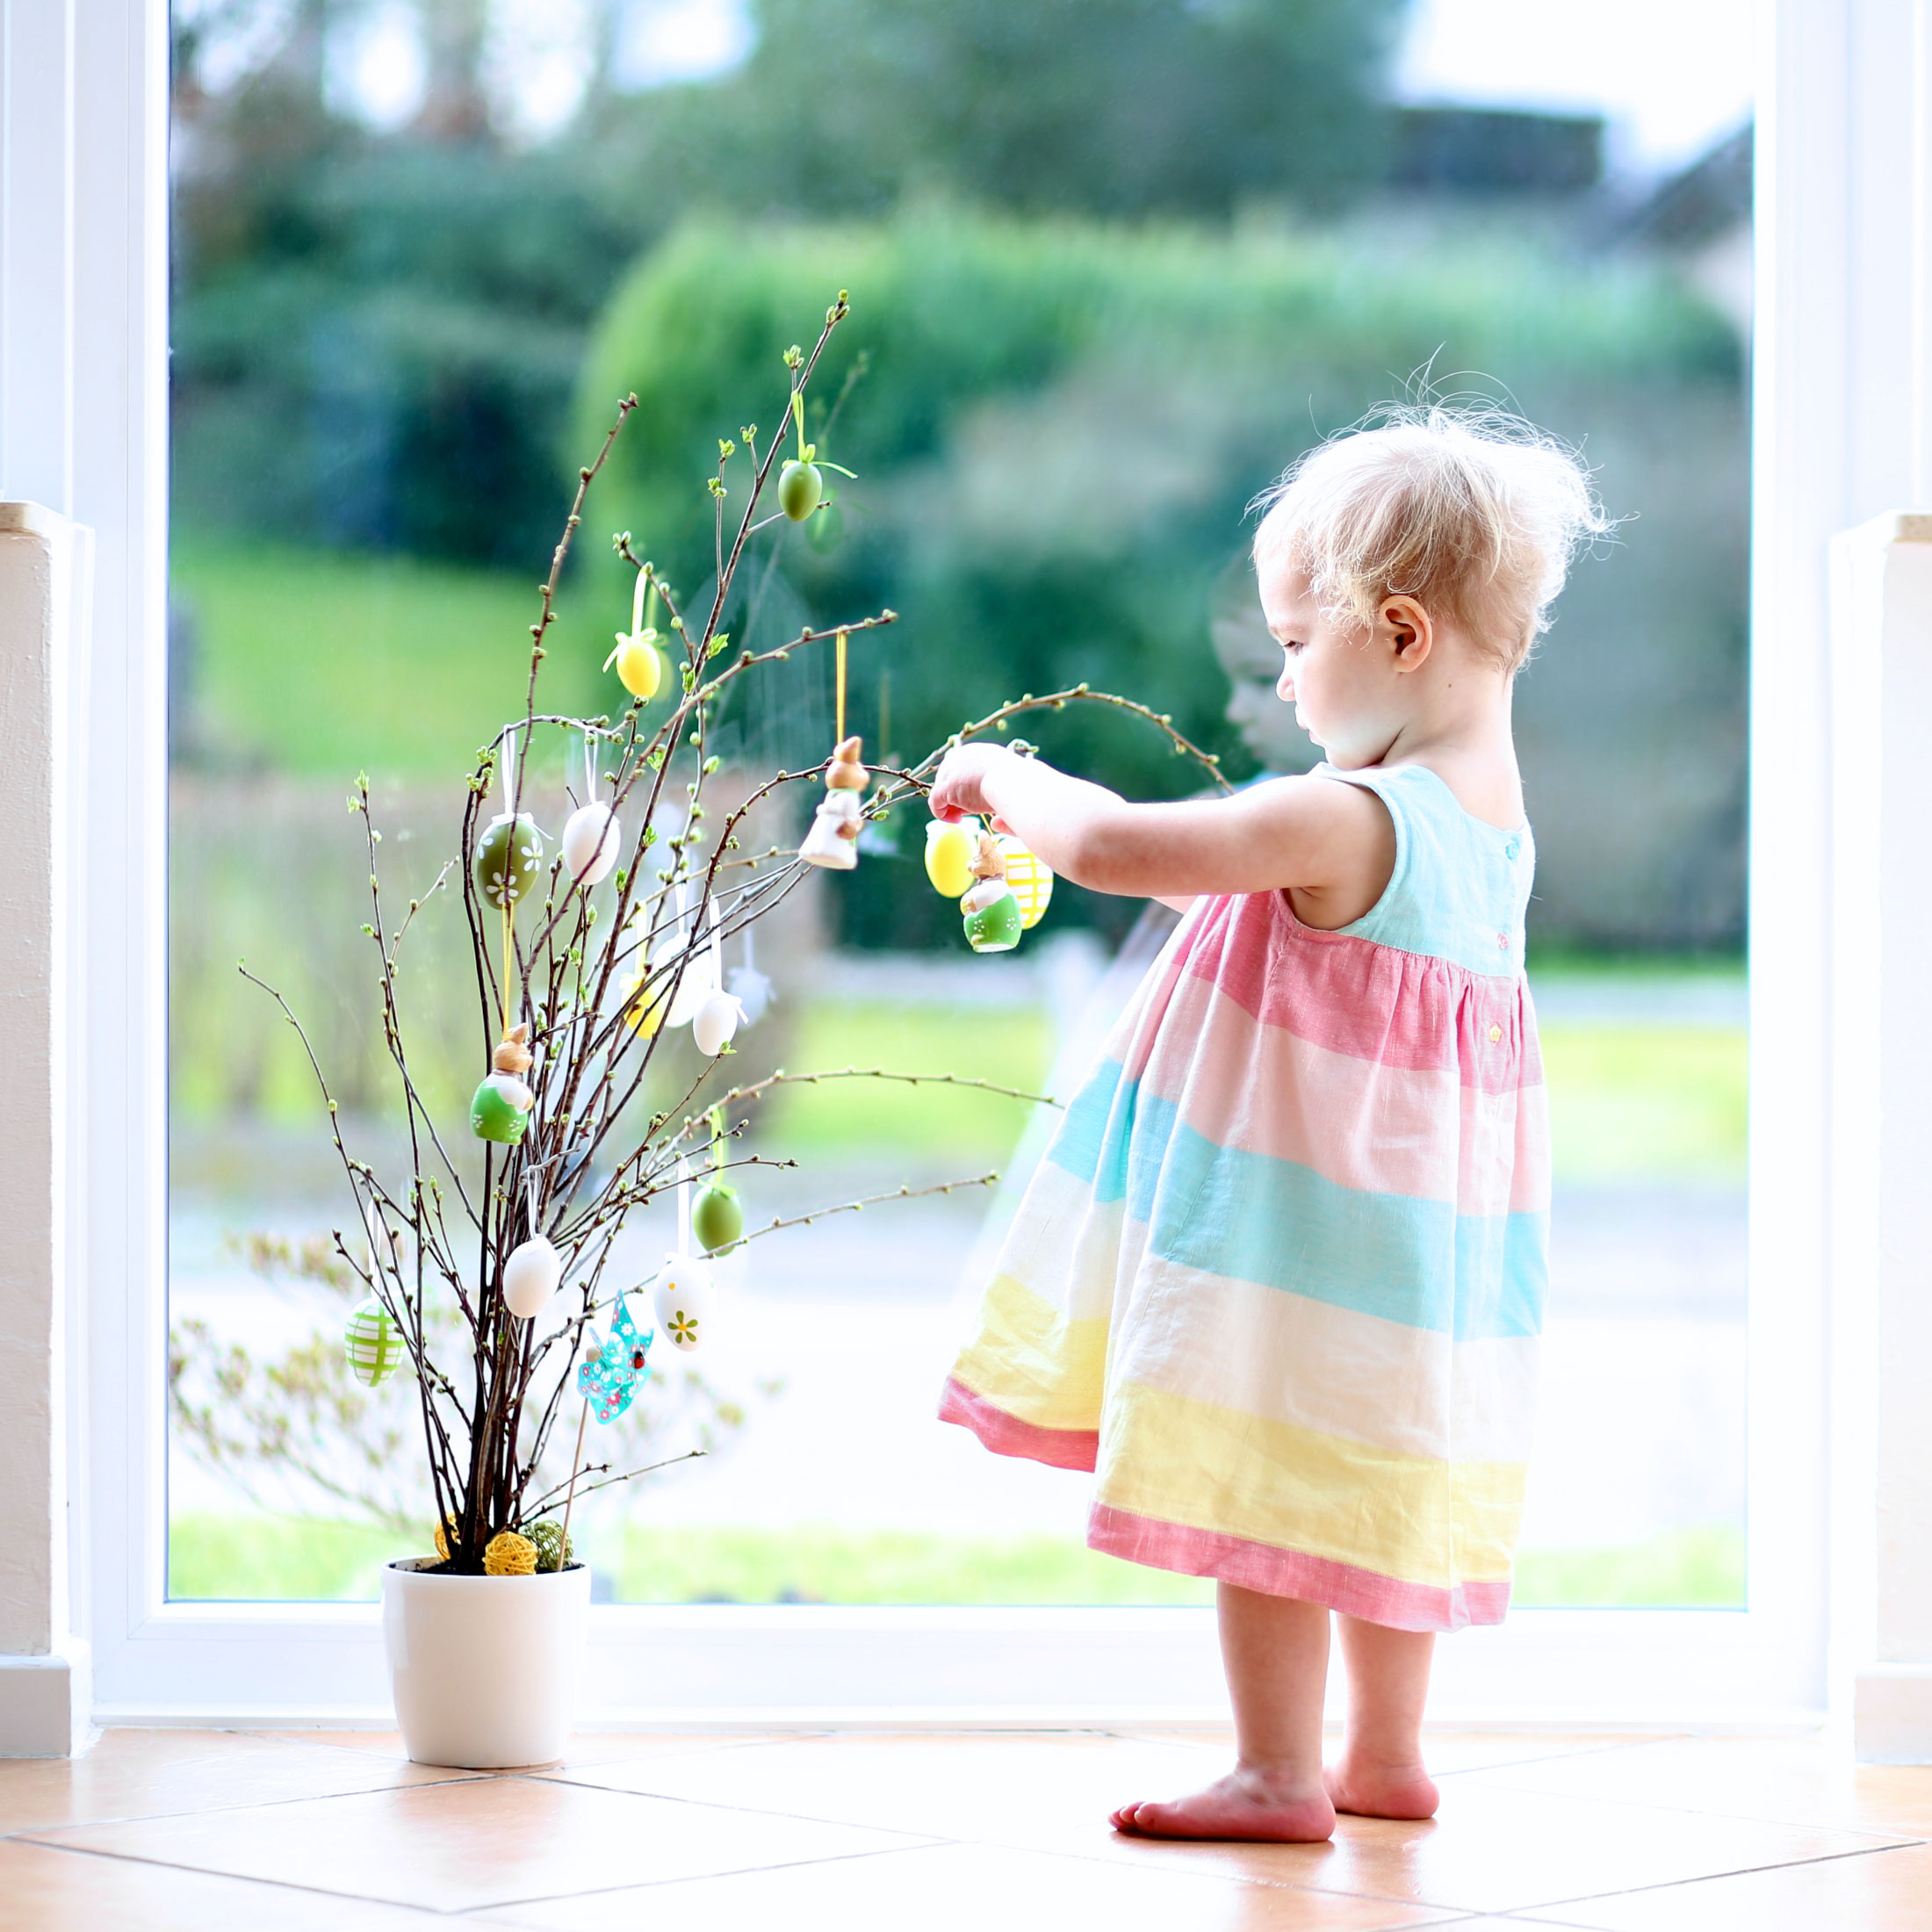 Dressing the Easter tree/twigs (photo by CroMary via Shutterstock)